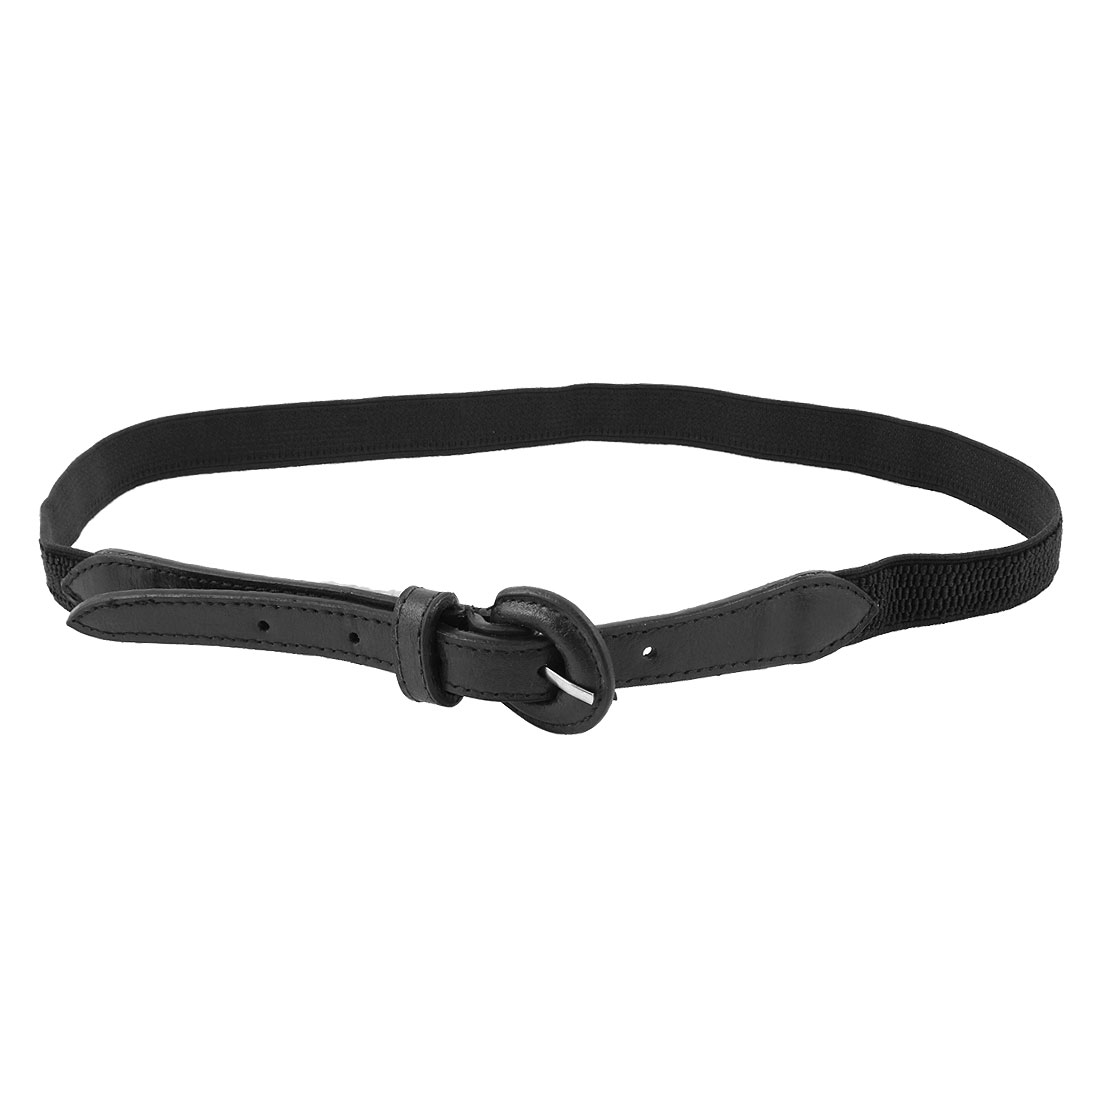 "Women Single Pin Closure 0.8"" Wide Black Adjustable Stretchy Waist Belt"